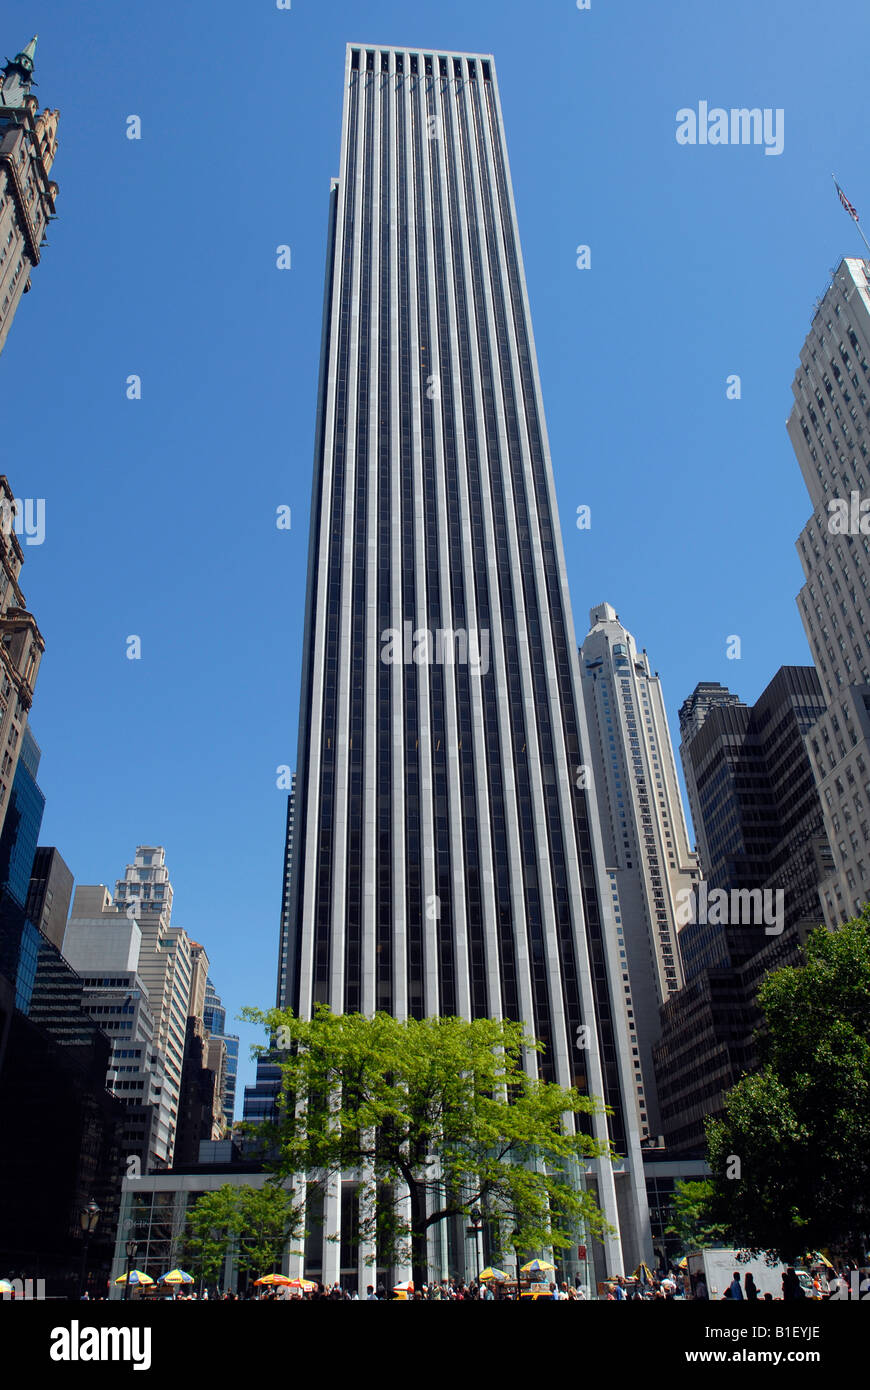 The General Motors Building on Fifth Avenue in New York Stock Photo